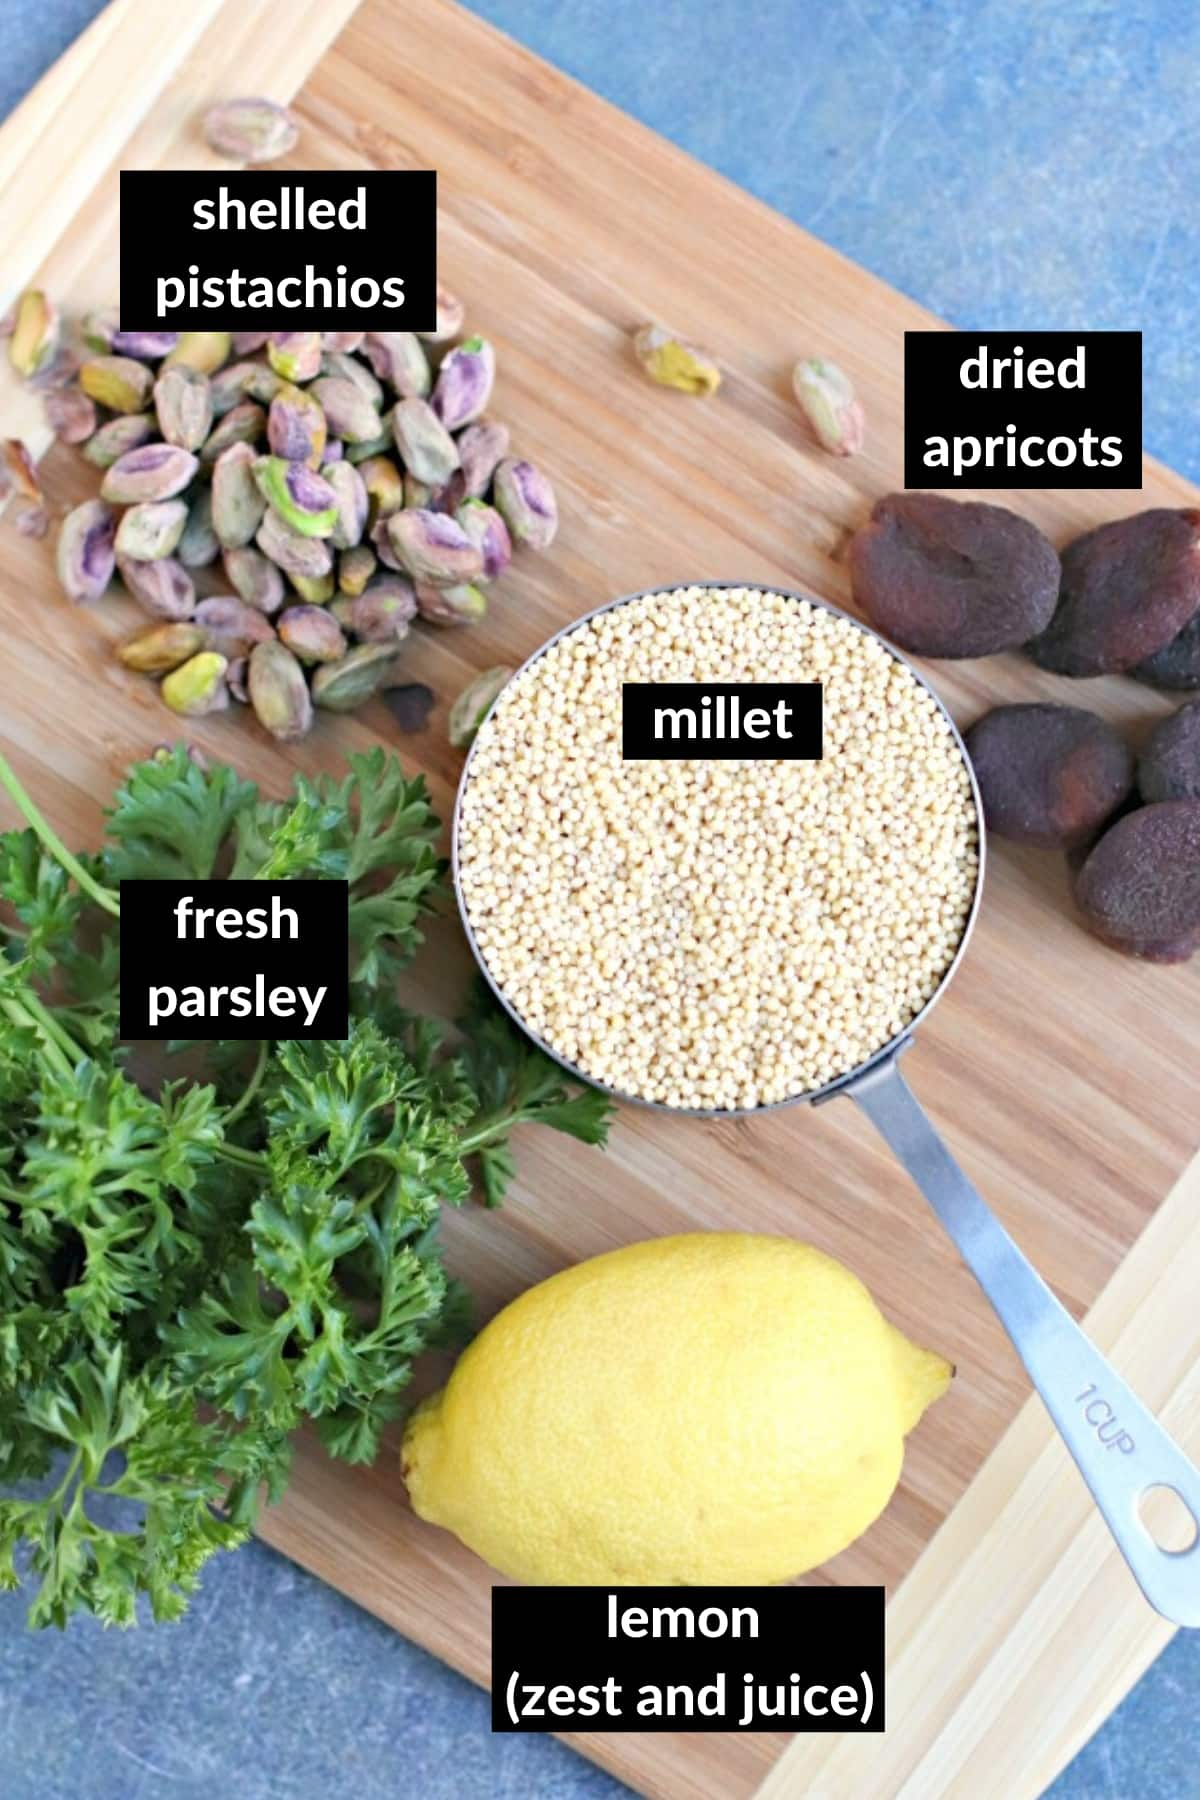 Ingredients needed to make this millet recipe on a wooden cutting board